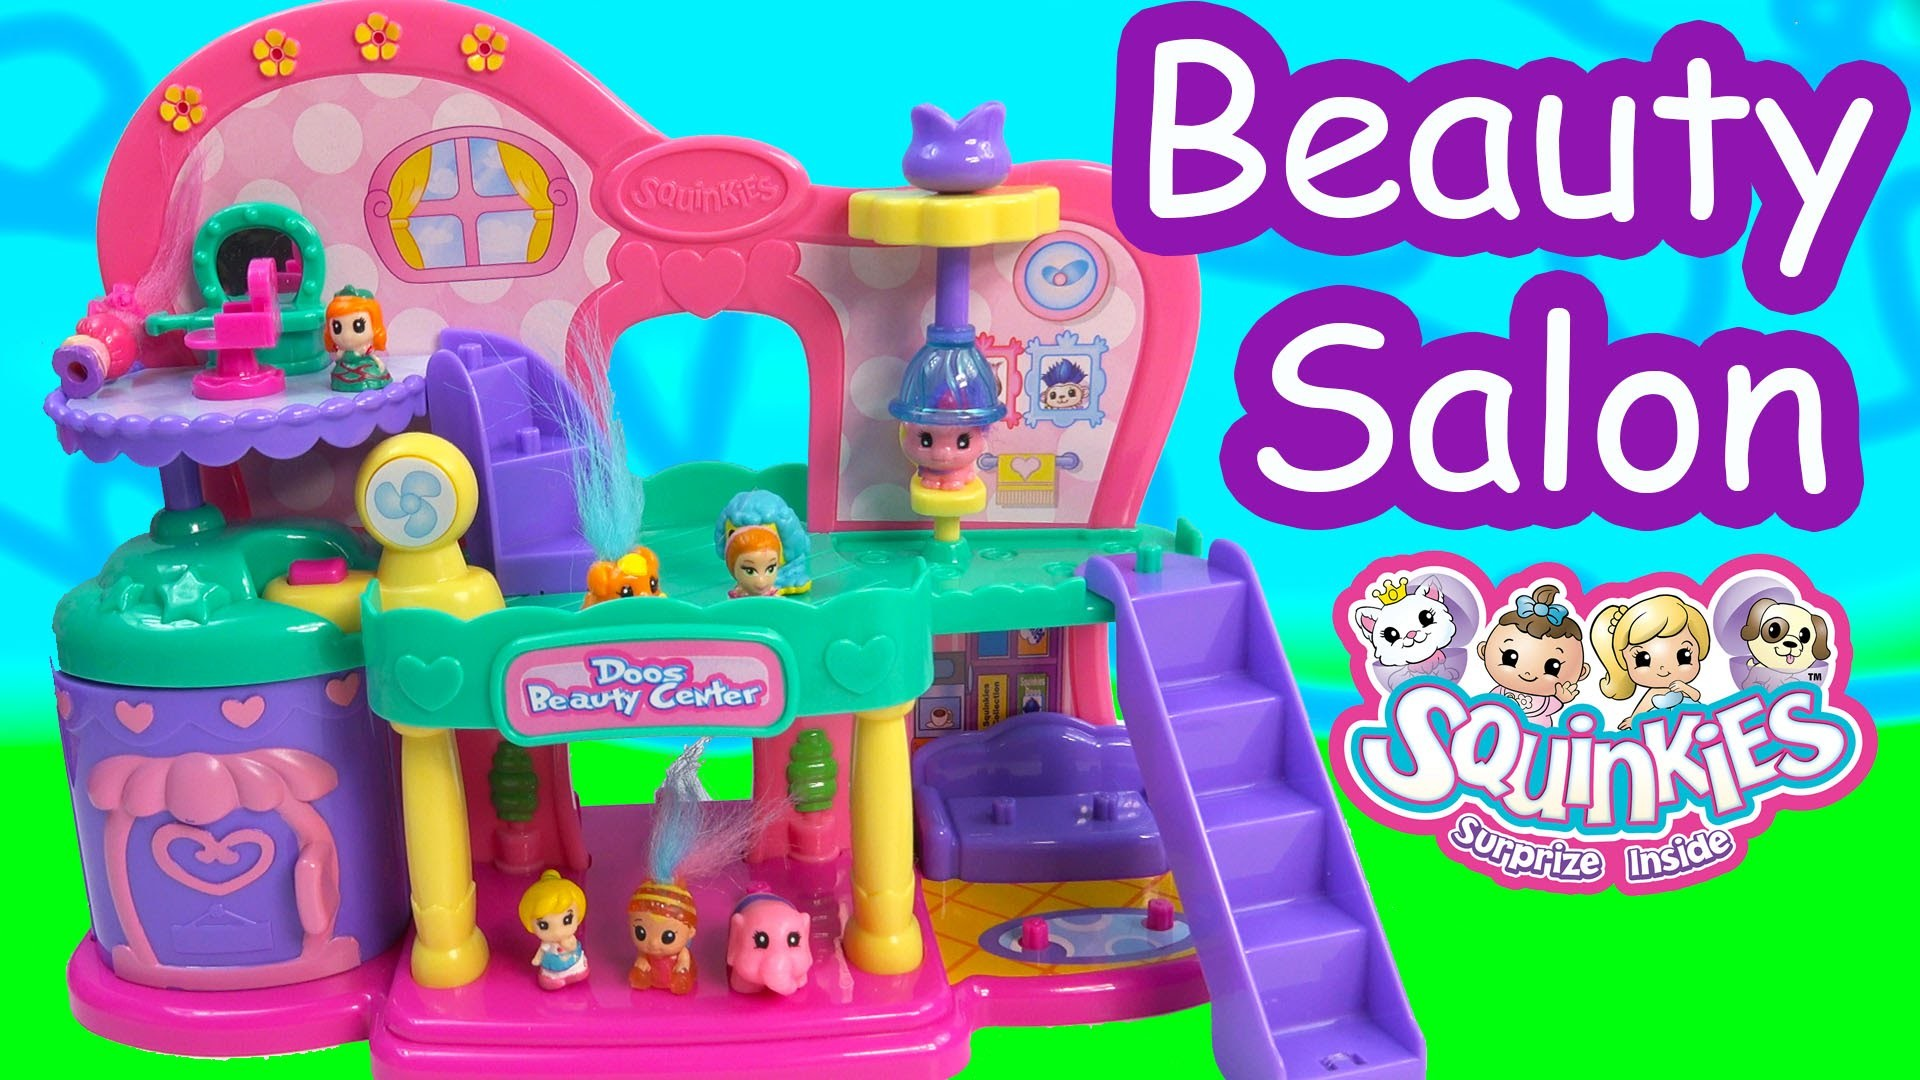 Squinkies Doos Beauty Center Spa Salon Playset Squishy Troll Hair Style Cookieswirlc